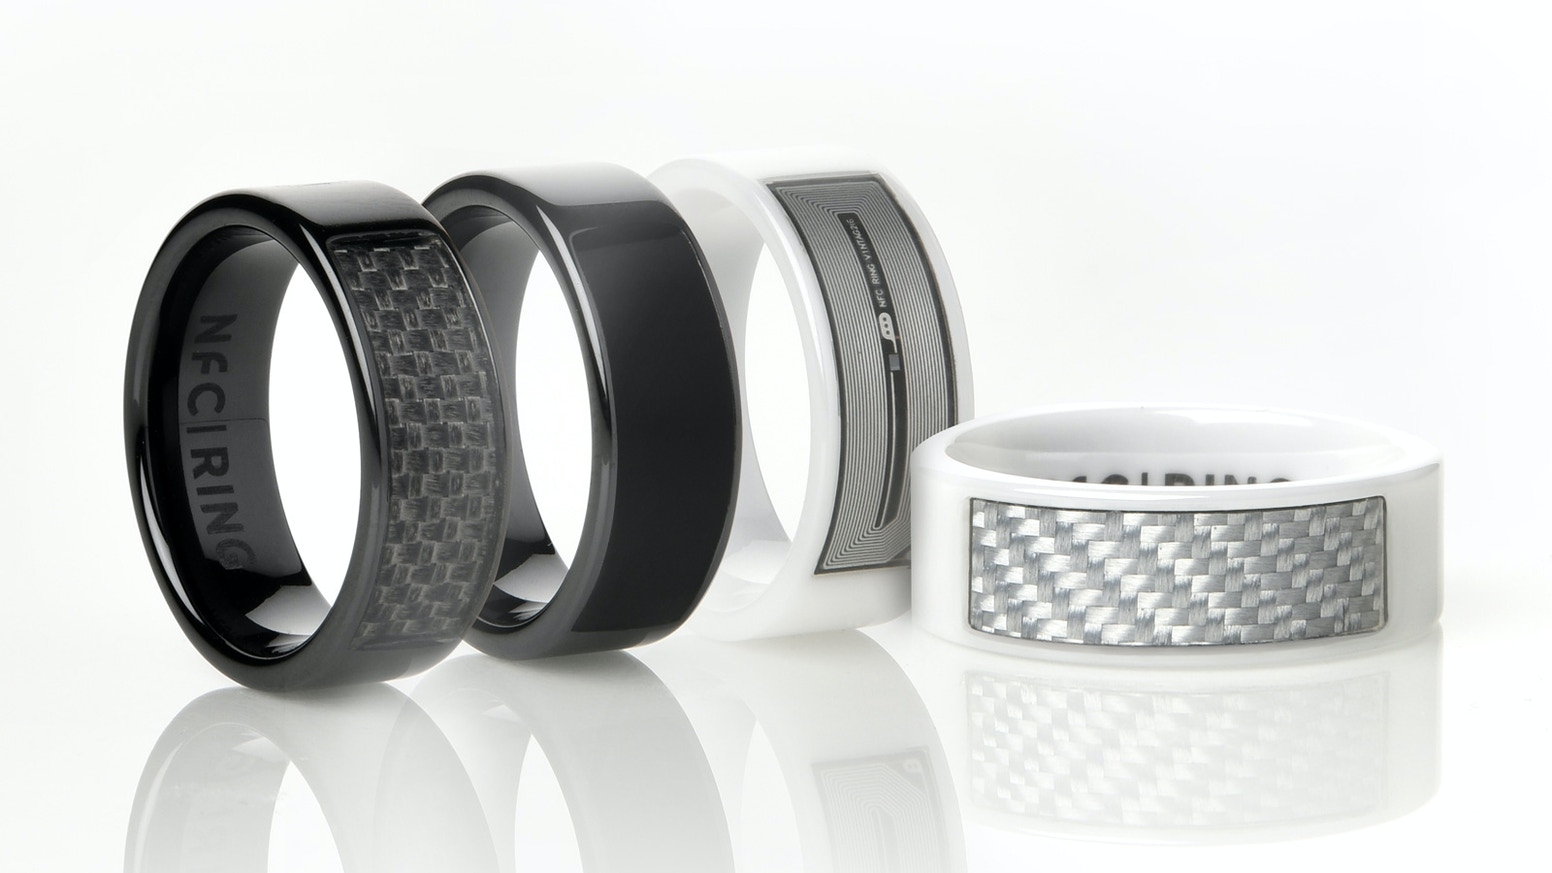 NFC Ring 2016 Range  One Smart Ring  Unlimited Possibilities